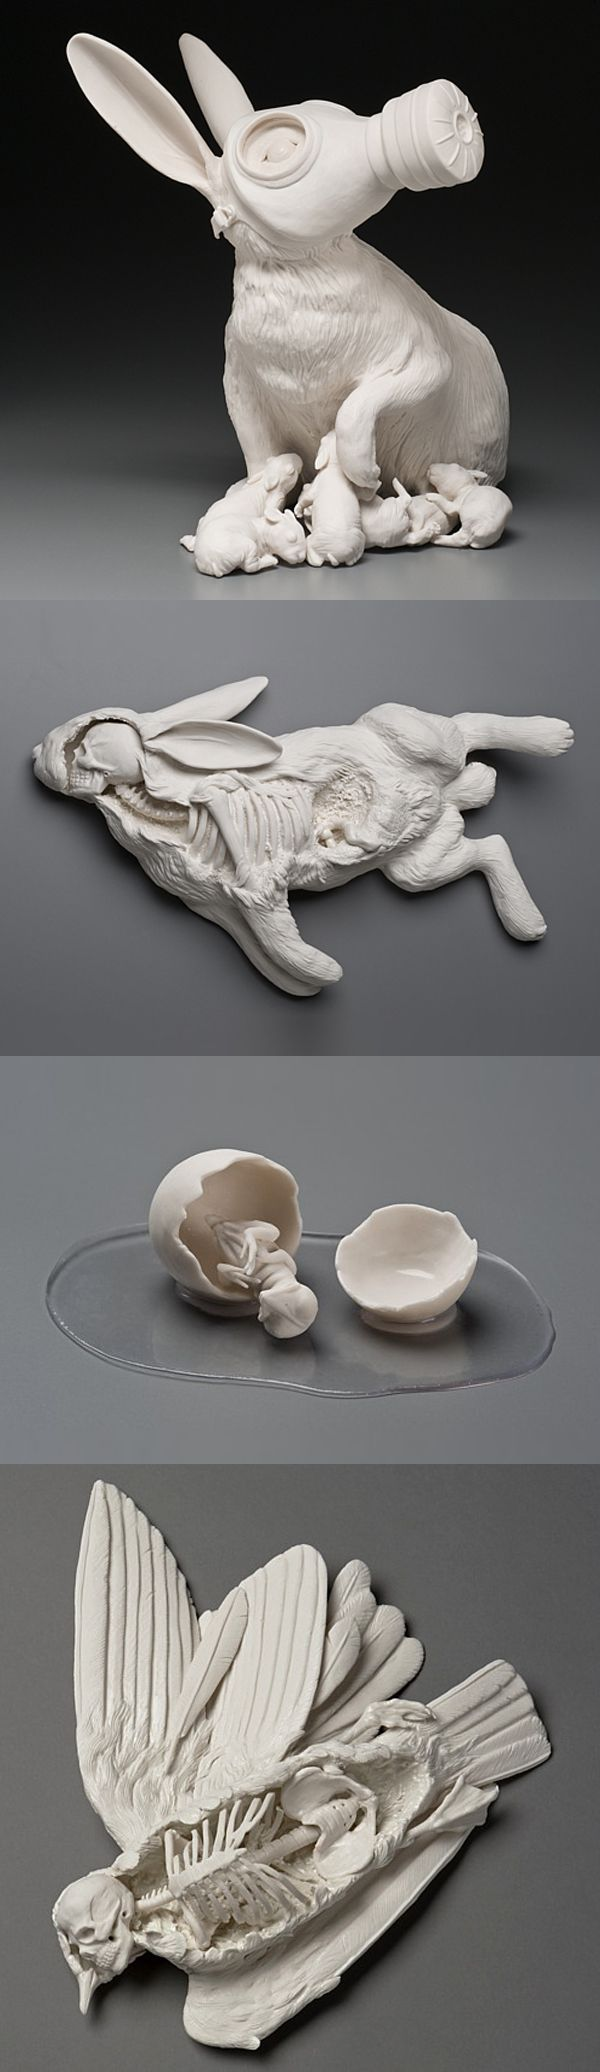 "Beautiful and thought-provoking porcelain sculptures by Kate MacDowell. ""These pieces are in part responses to environmental stressors including climate change, toxic pollution, and gm crops. They also borrow from myth, art history, figures of speech and other cultural touchstones. In some pieces aspects of the human figure stand-in for ourselves and act out sometimes harrowing, sometimes humorous transformations which illustrate our current relationship with the natural world."""